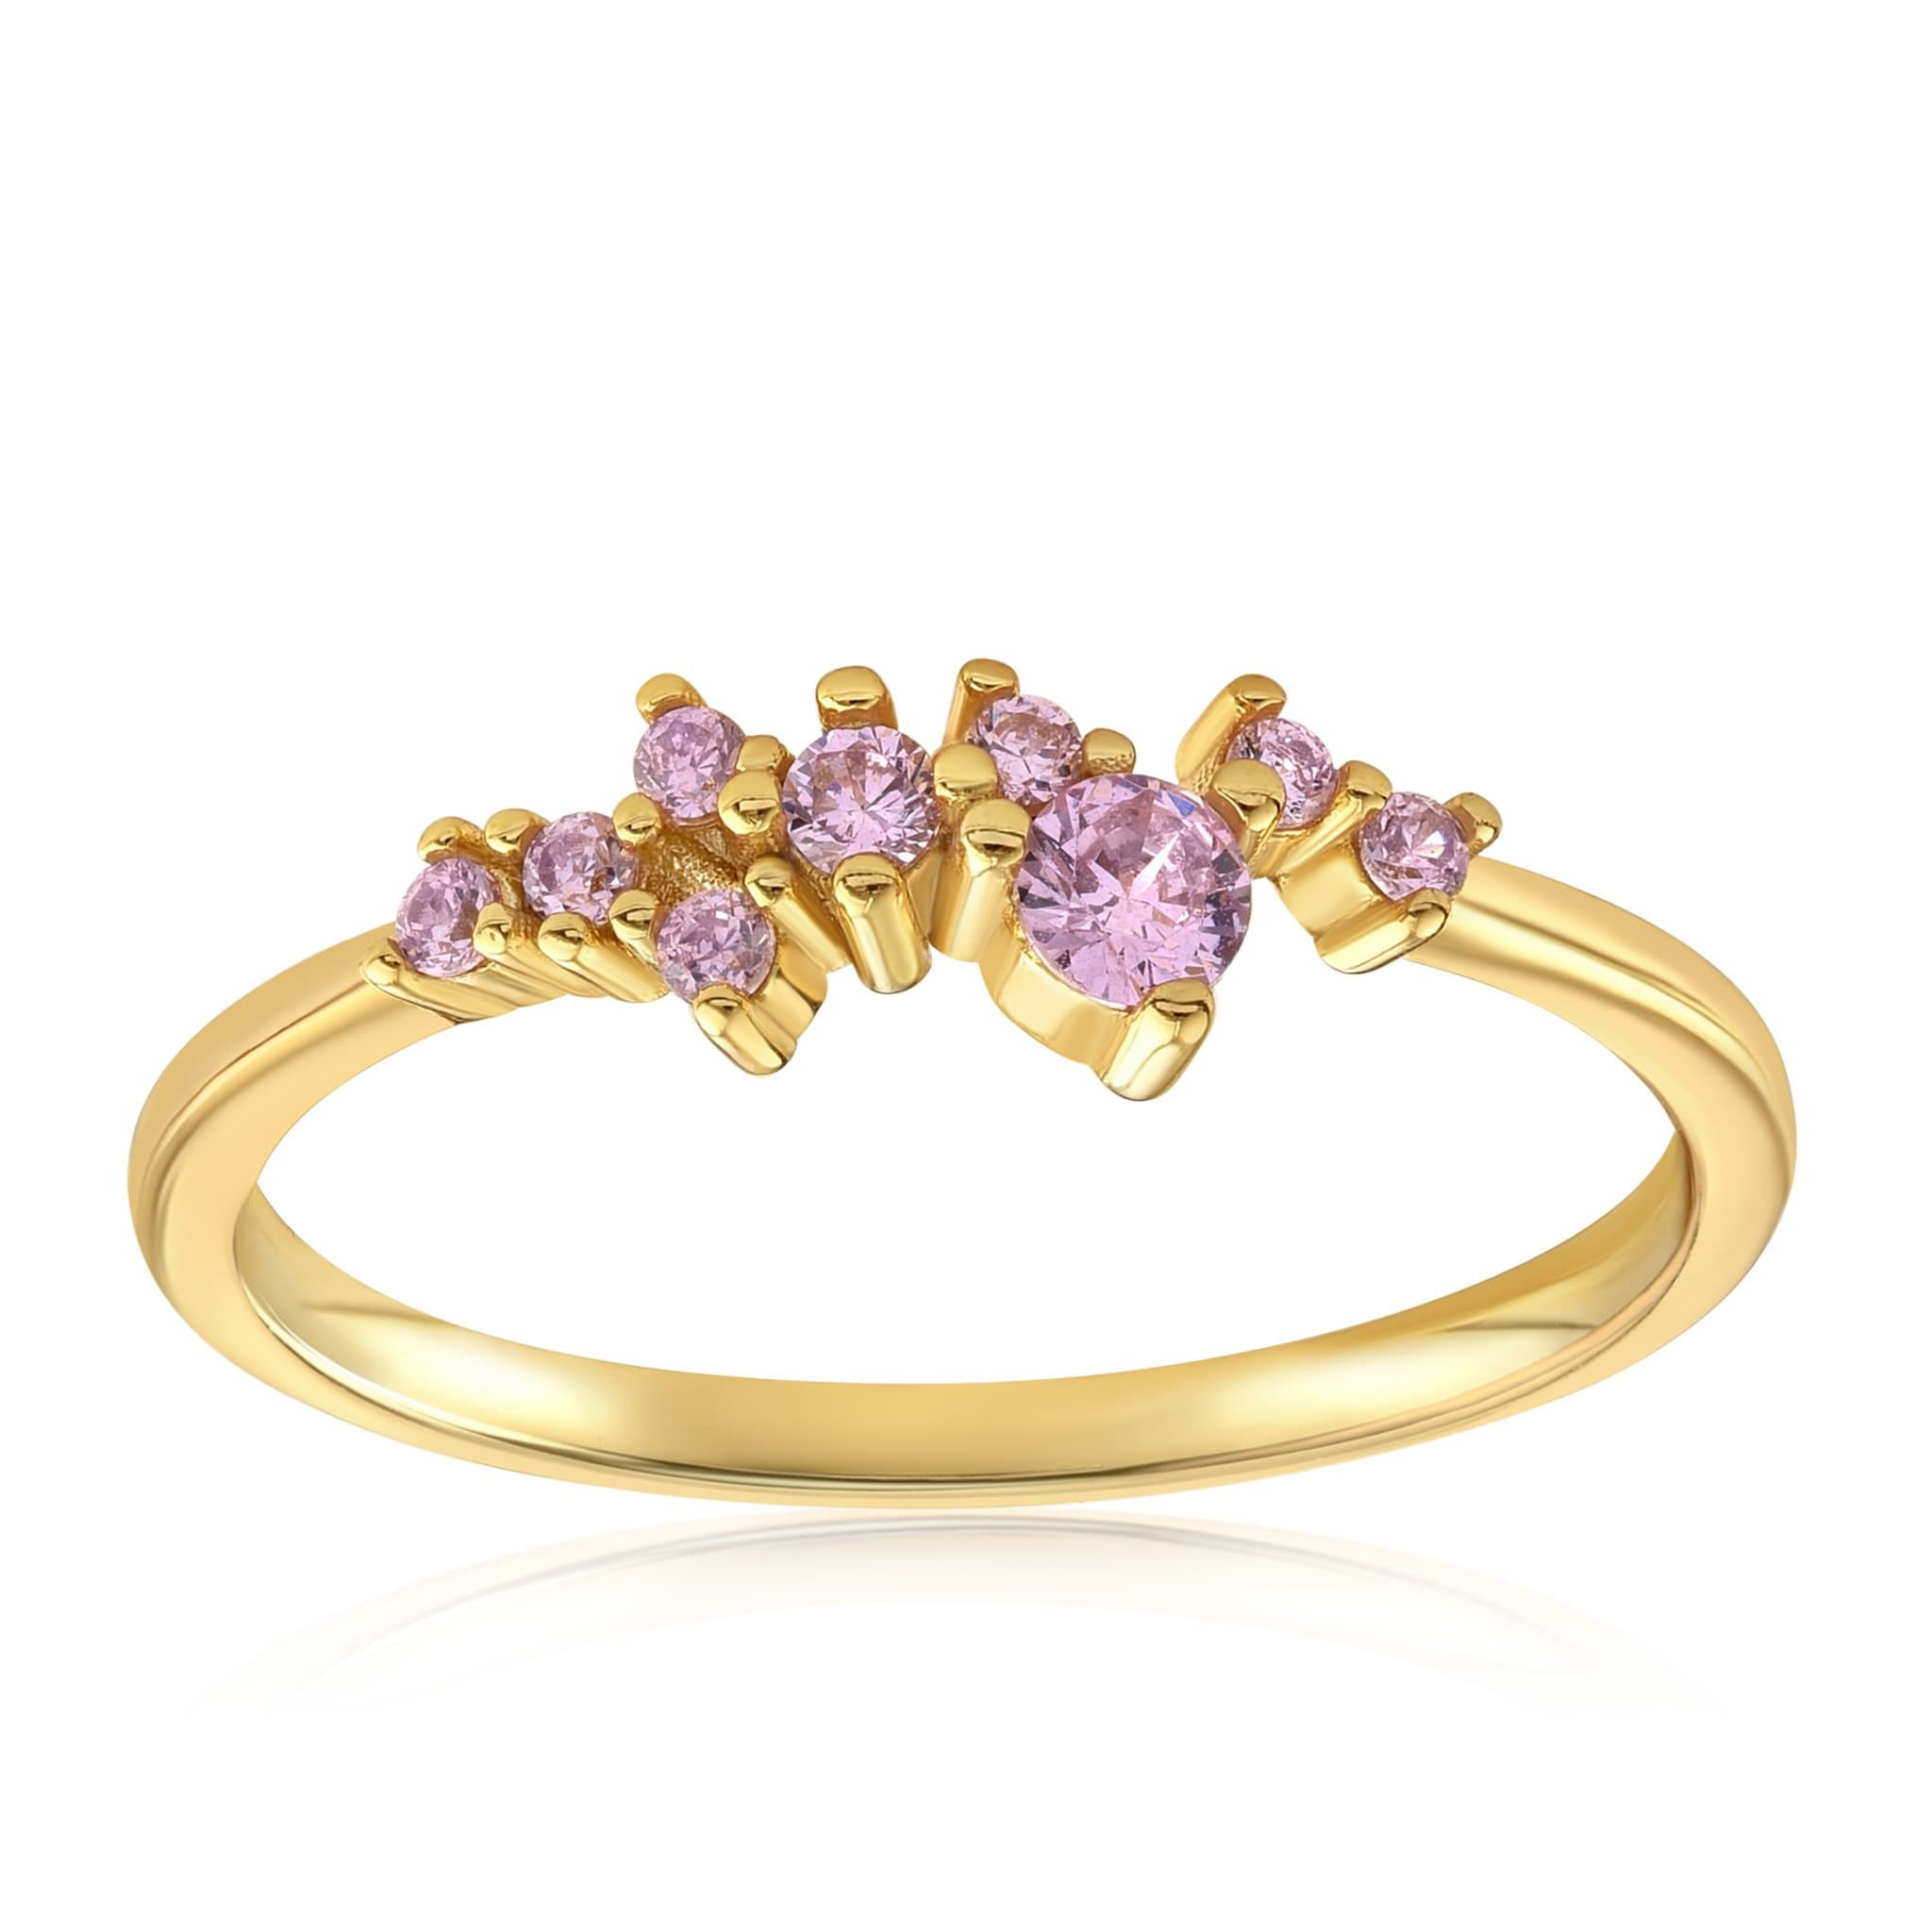 Rose Quartz Cluster Ring - Front View Facing Up - 18K Yellow Gold Vermeil